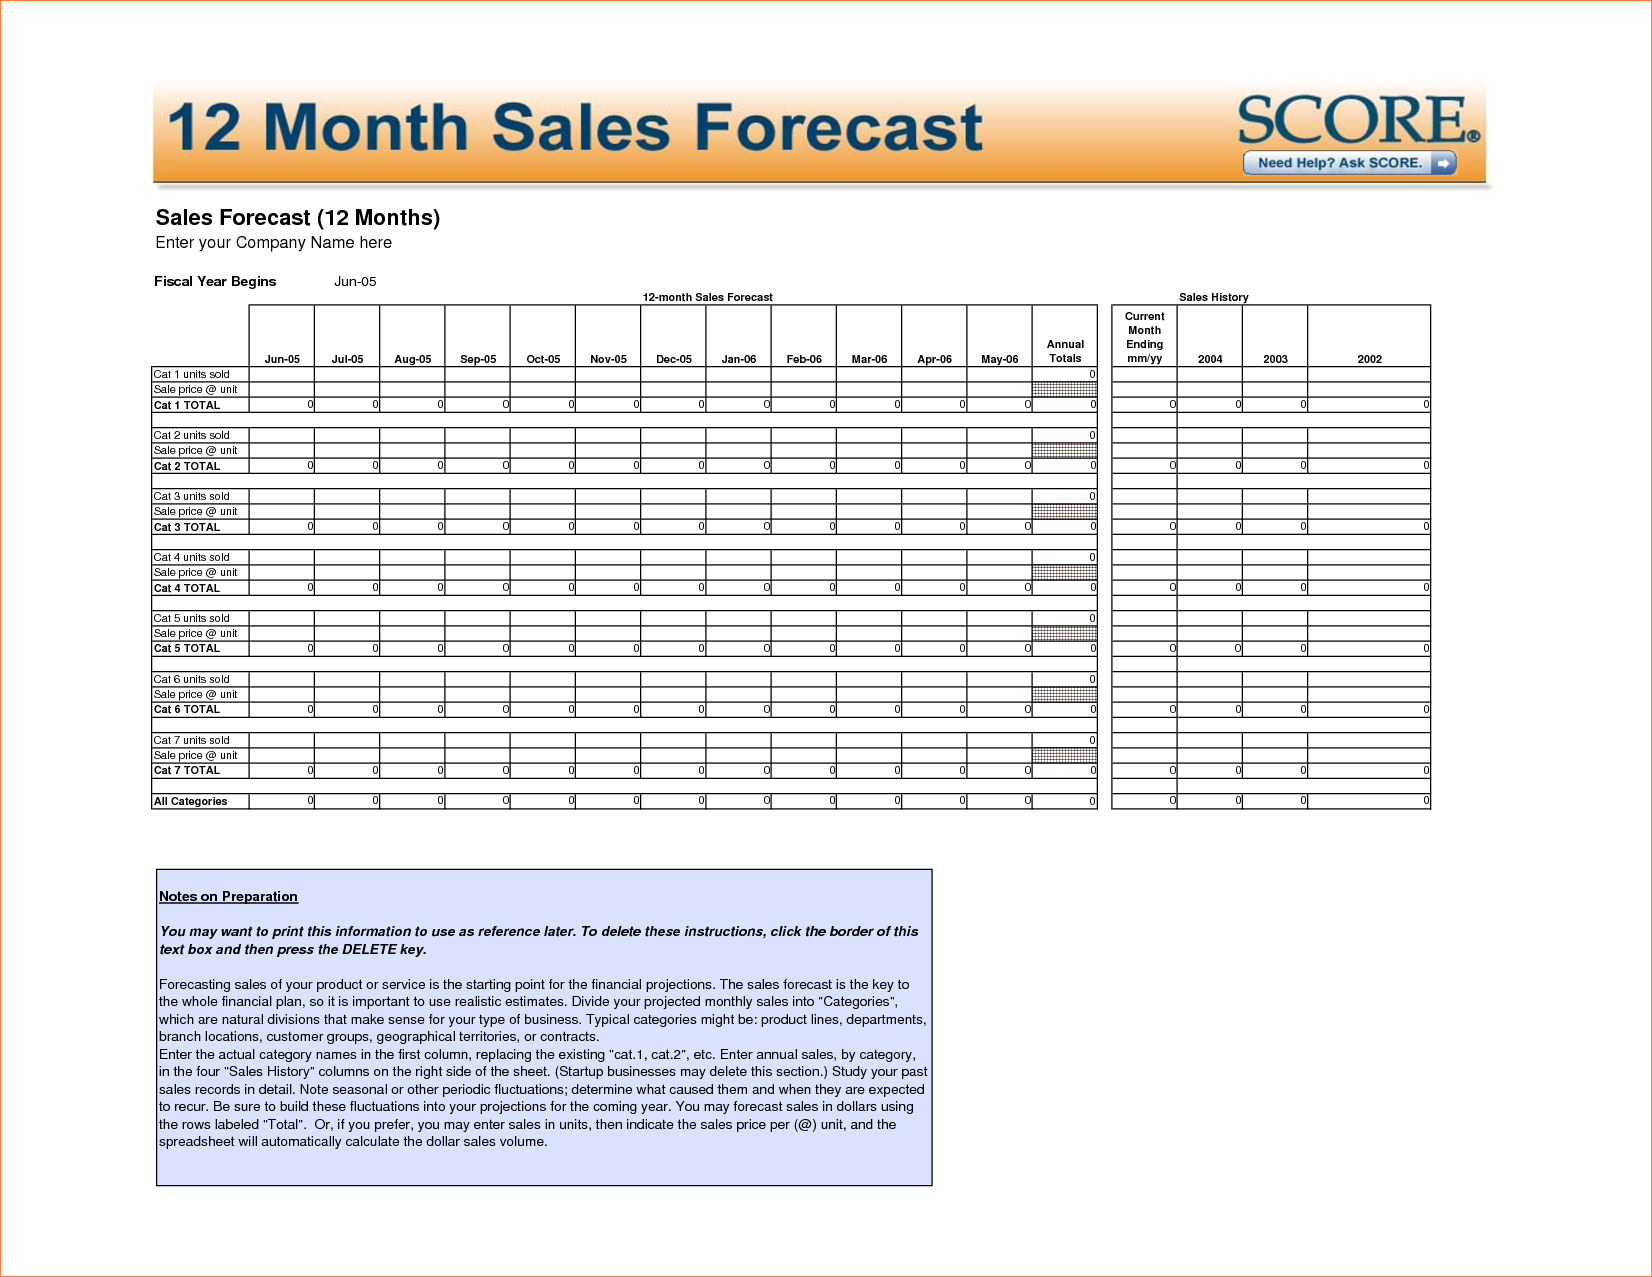 5 Year Cash Flow Template Projected Sales Forecast Example Sales Forecast Example 12 Month Financial Projection Template Sales Forecast Sheet Template 12 Month Sales Forecast Example Sales Forecast Model